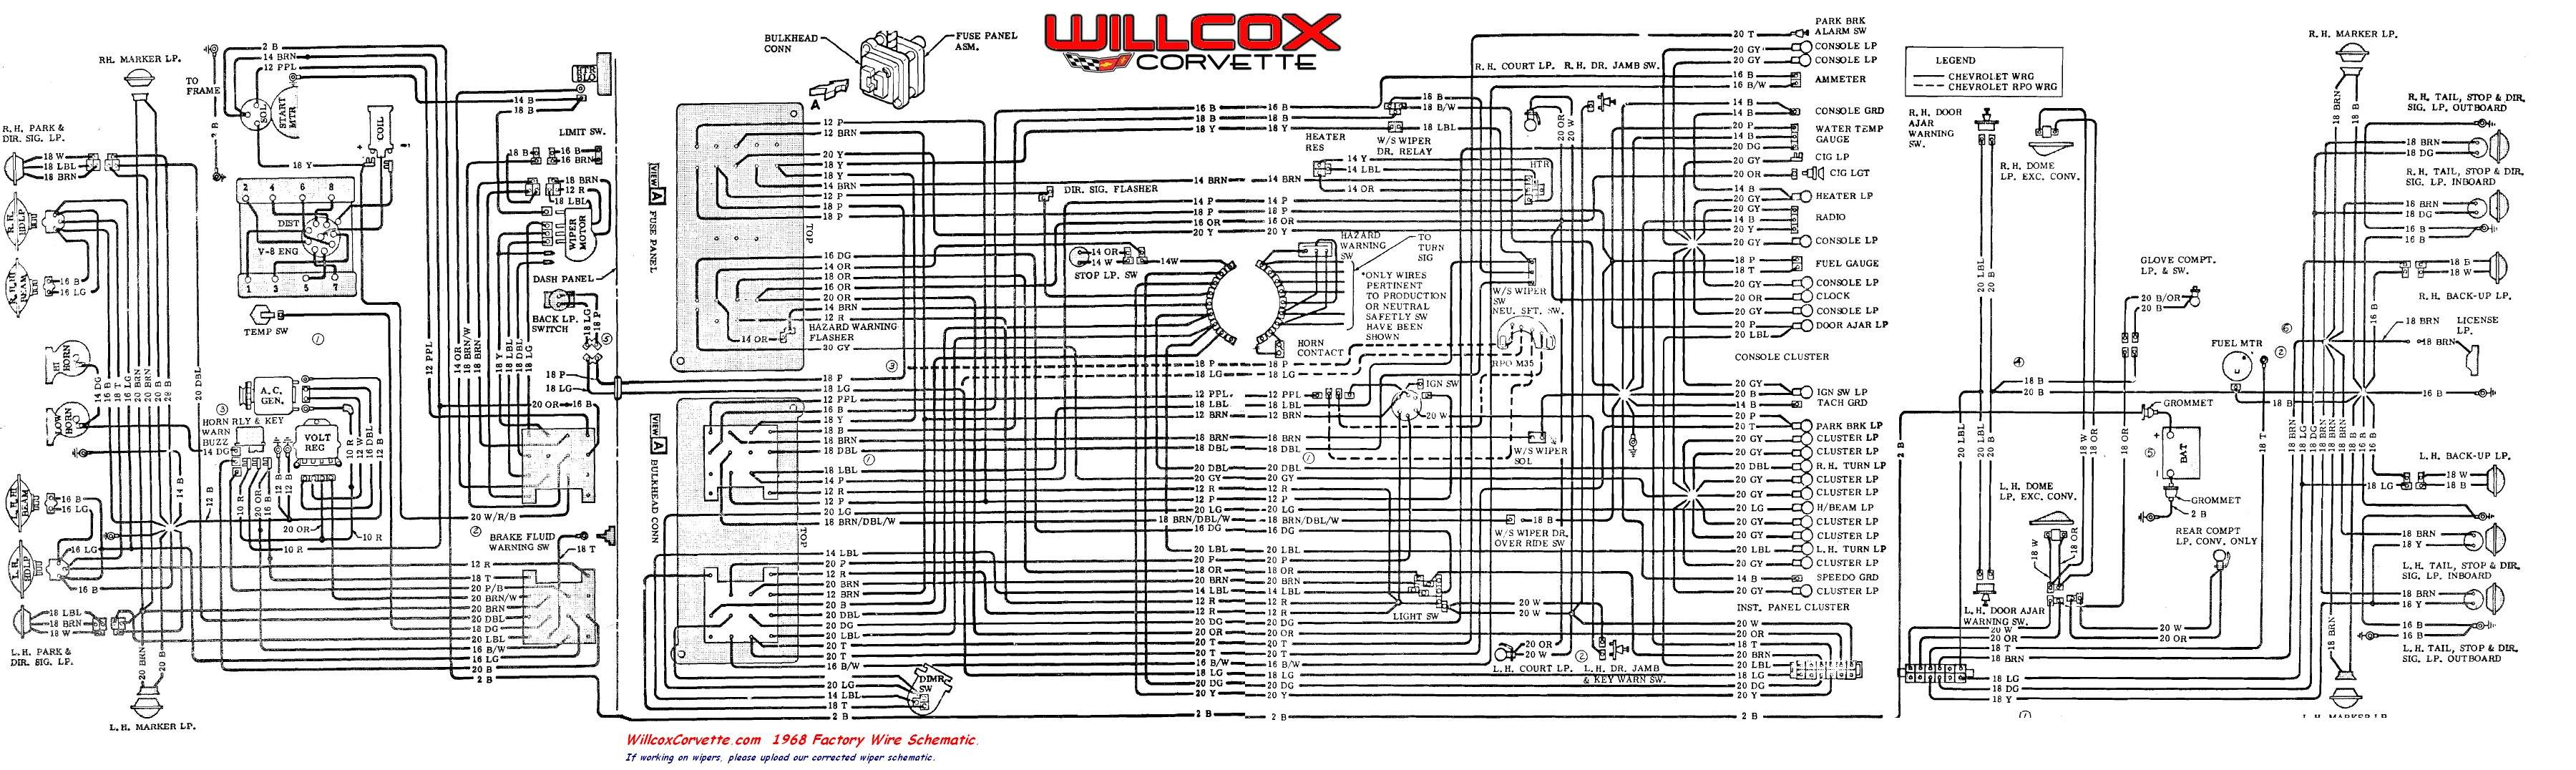 1972 Corvette Wiring Diagram - Illustration Of Wiring Diagram •